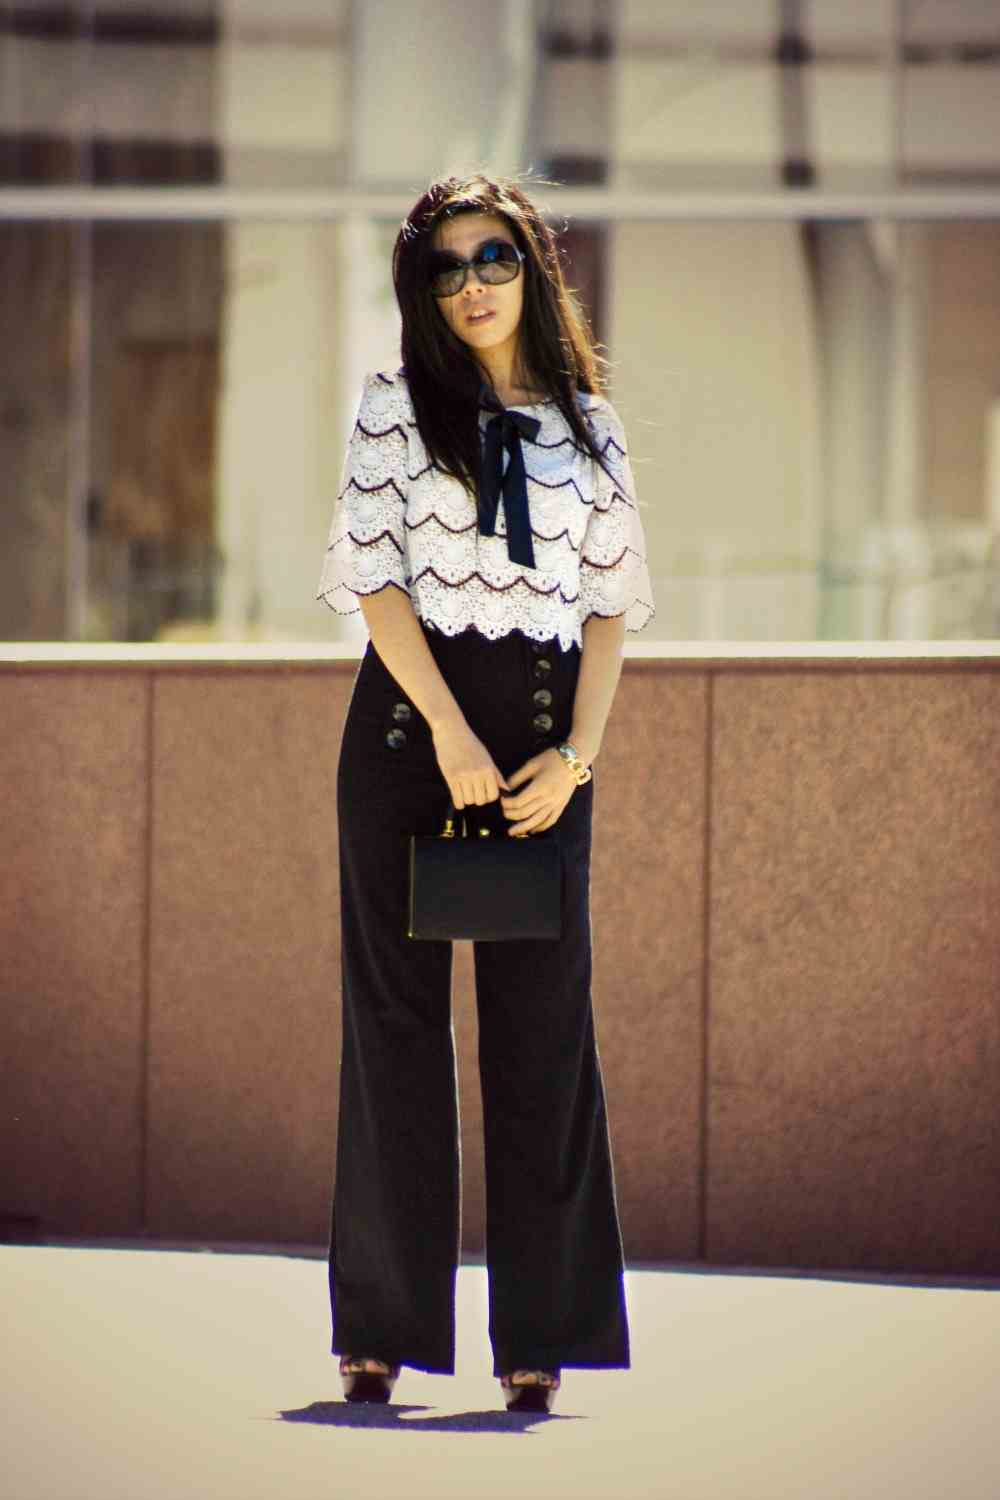 Make Sure You Buy These 5 Tops To Pair With Those Palazzos You Bought!